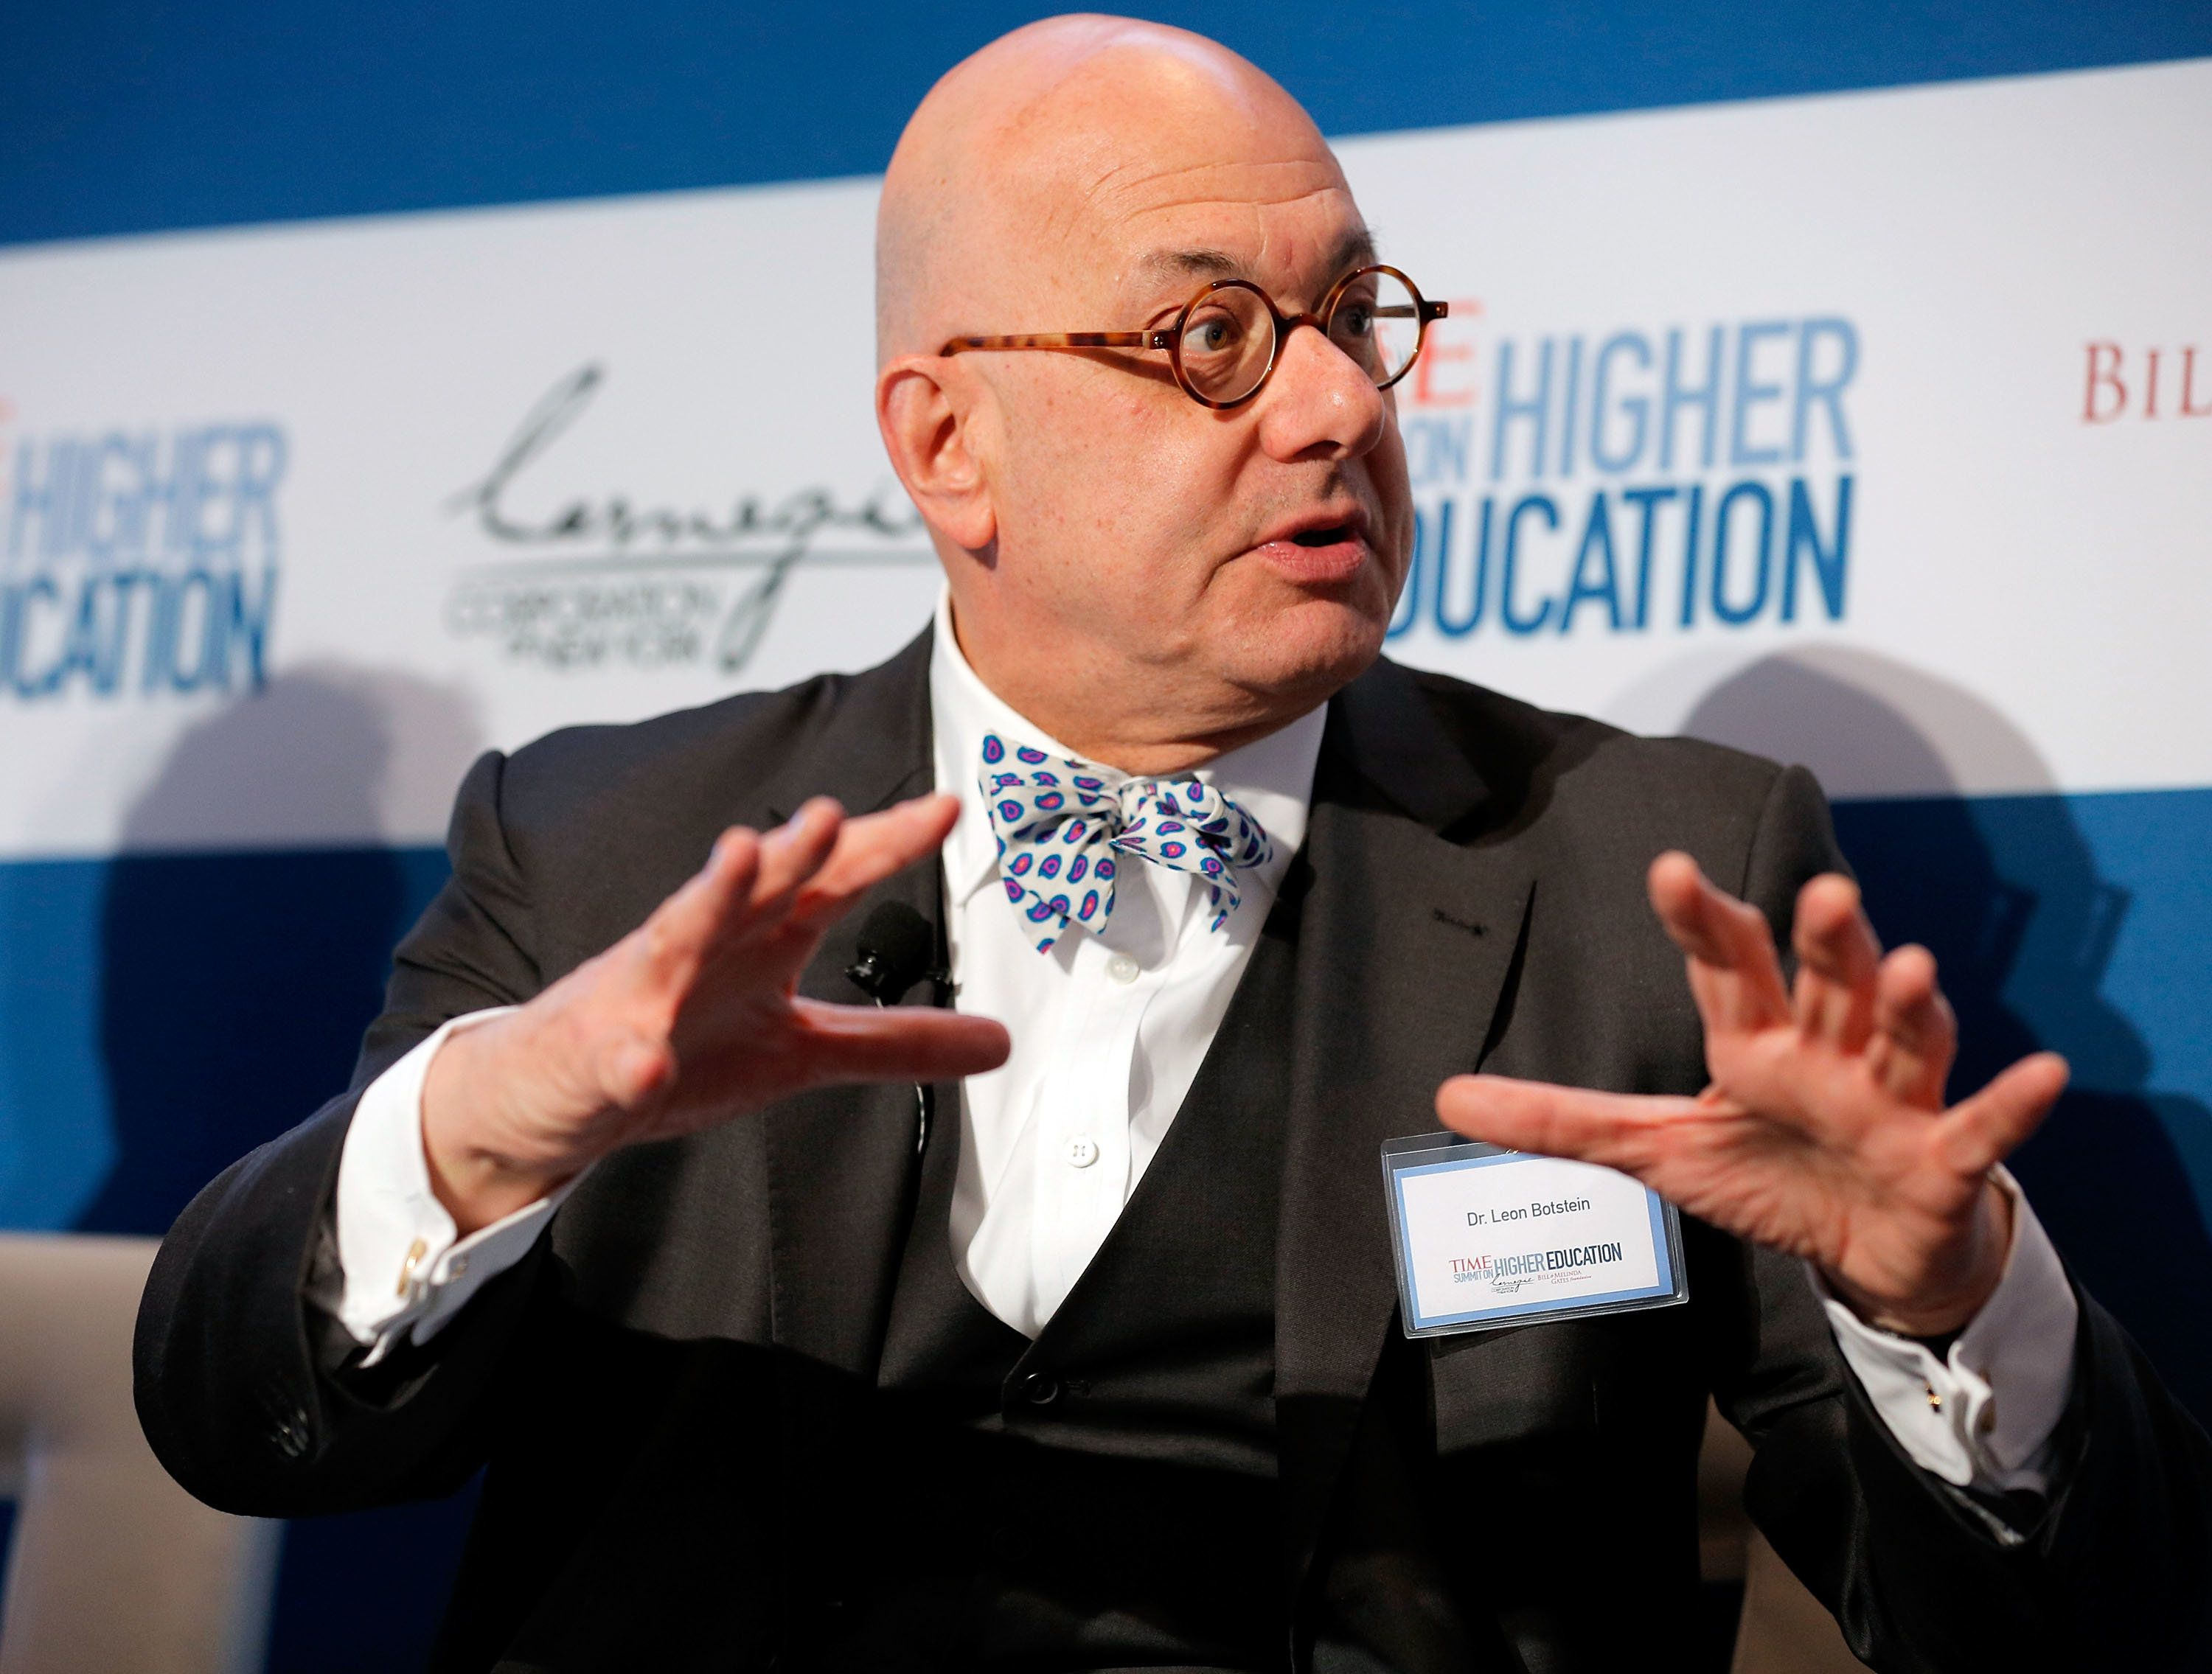 Remarks Bard College President Leon Botstein, pictured in 2012, allegedly made to a group of students have resulted in an add